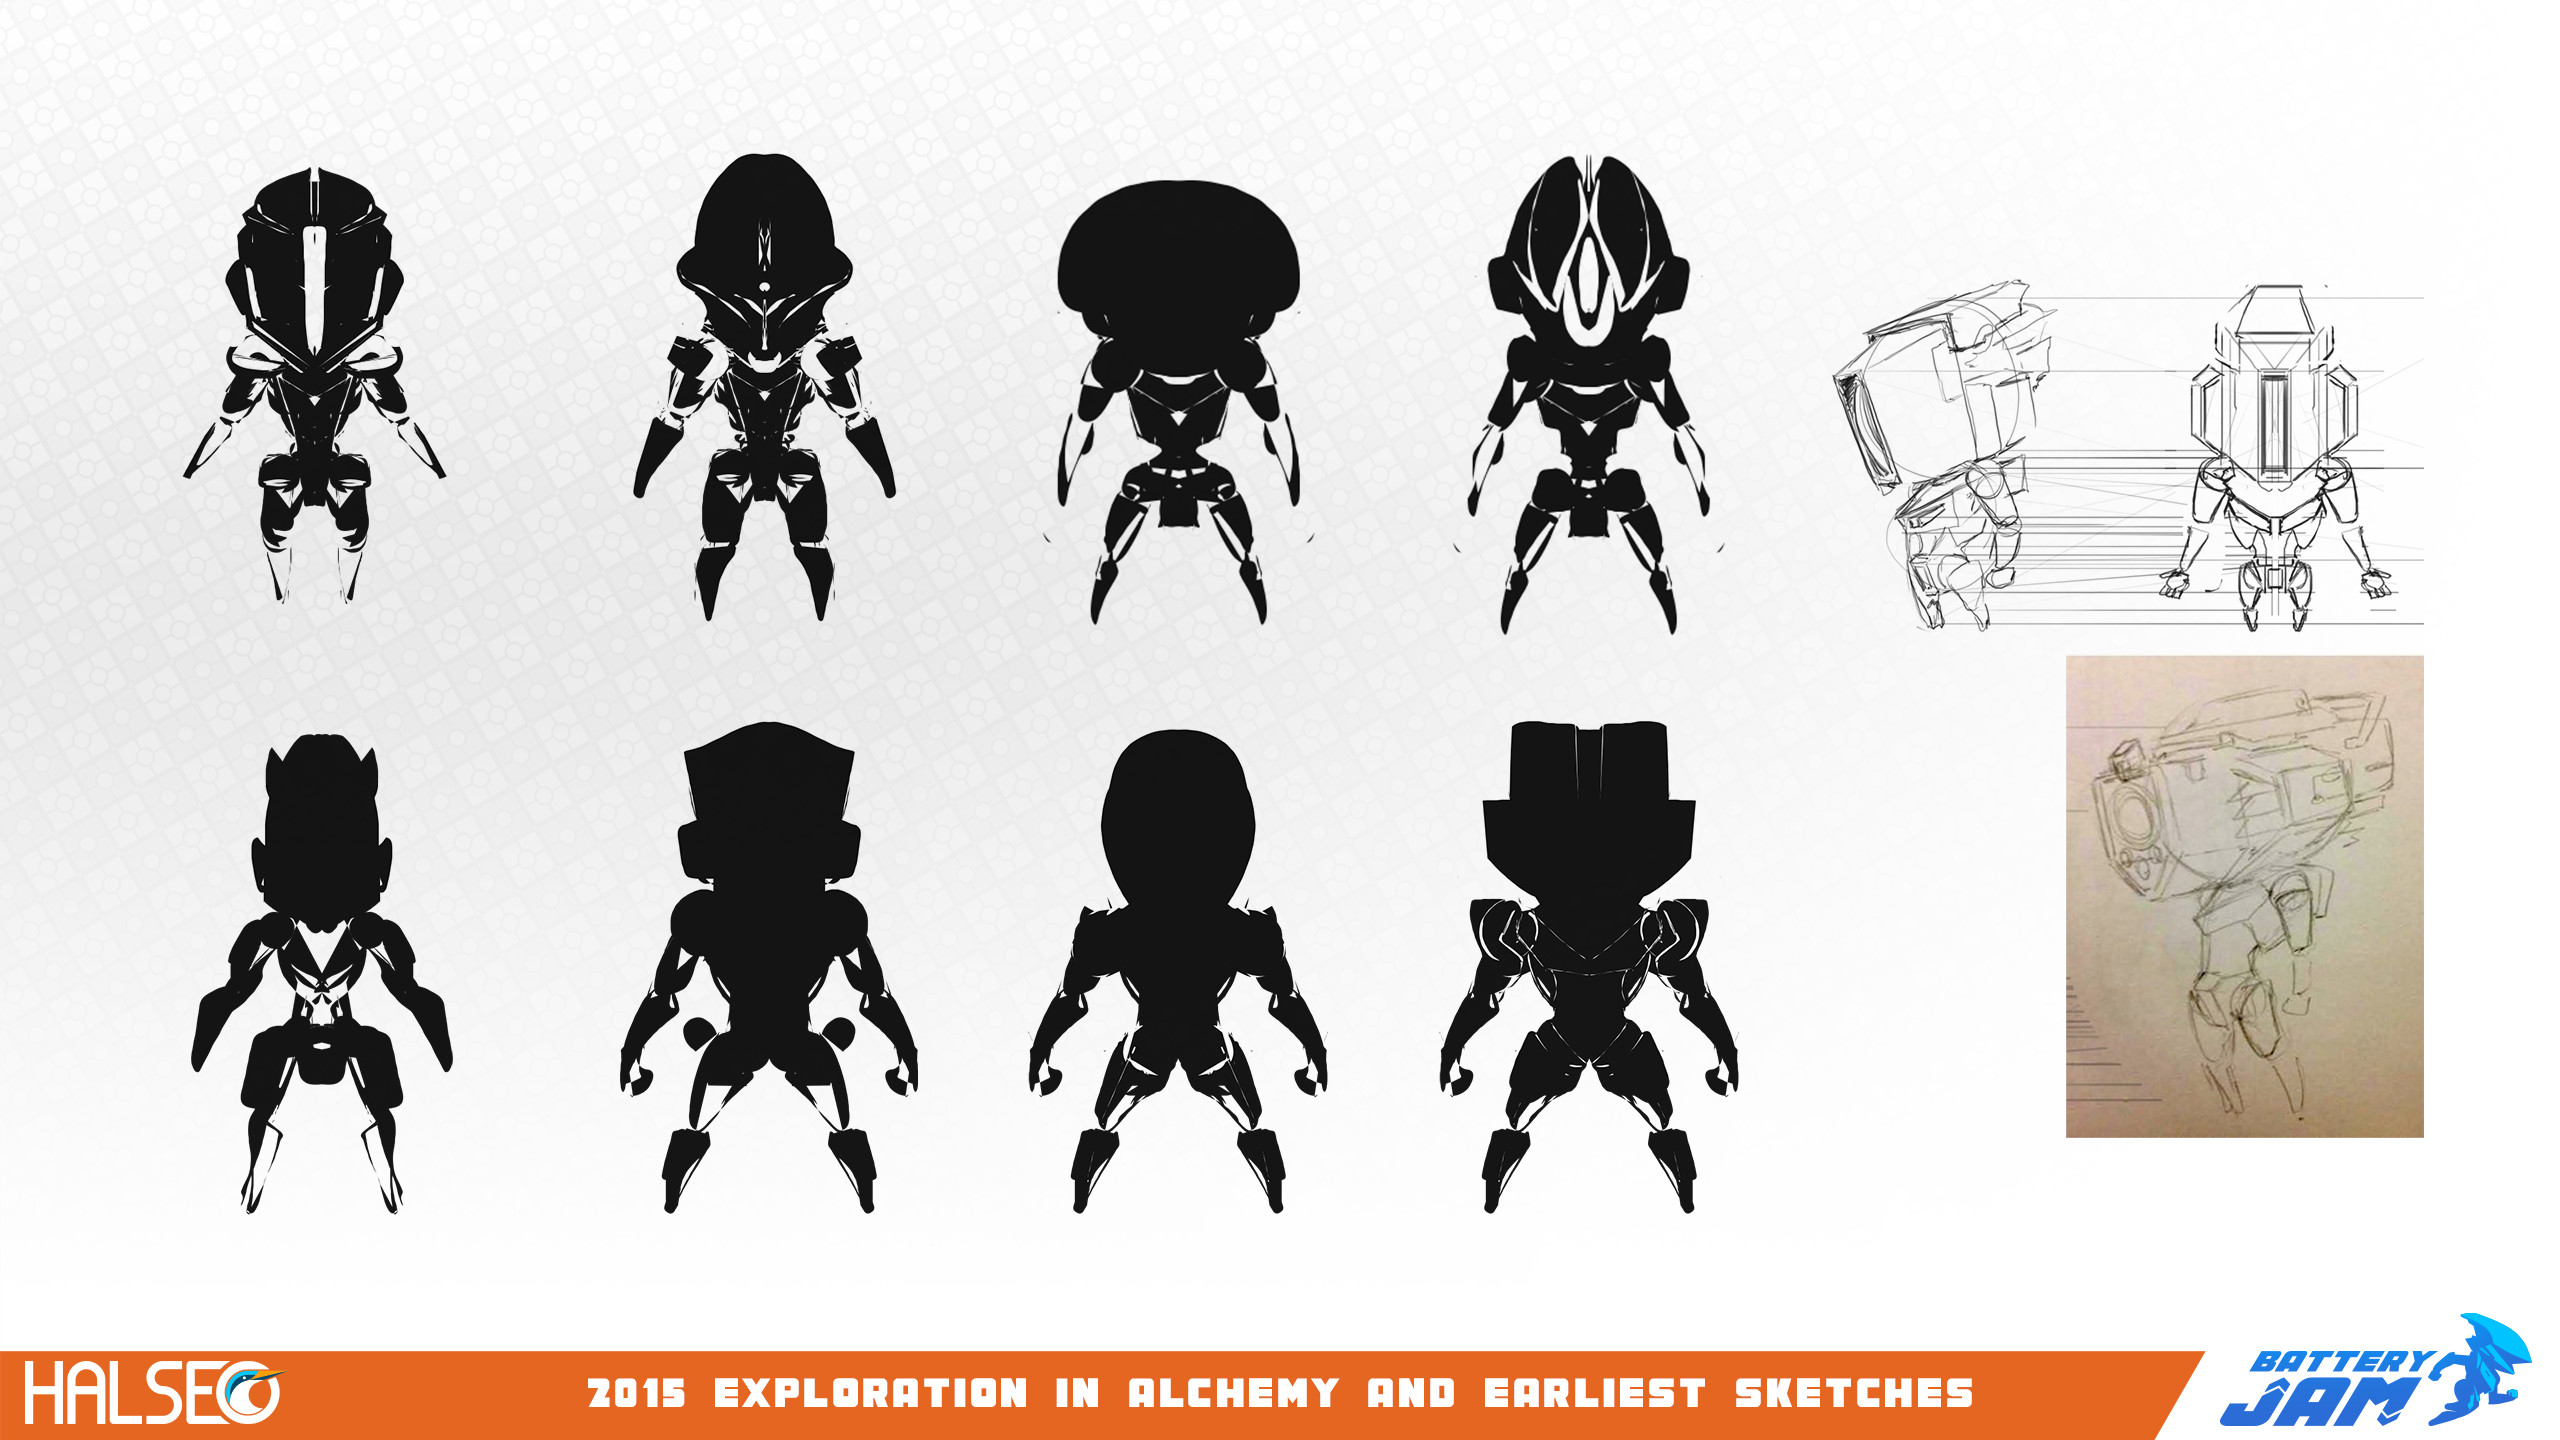 The very first concepts from when the project started in college.